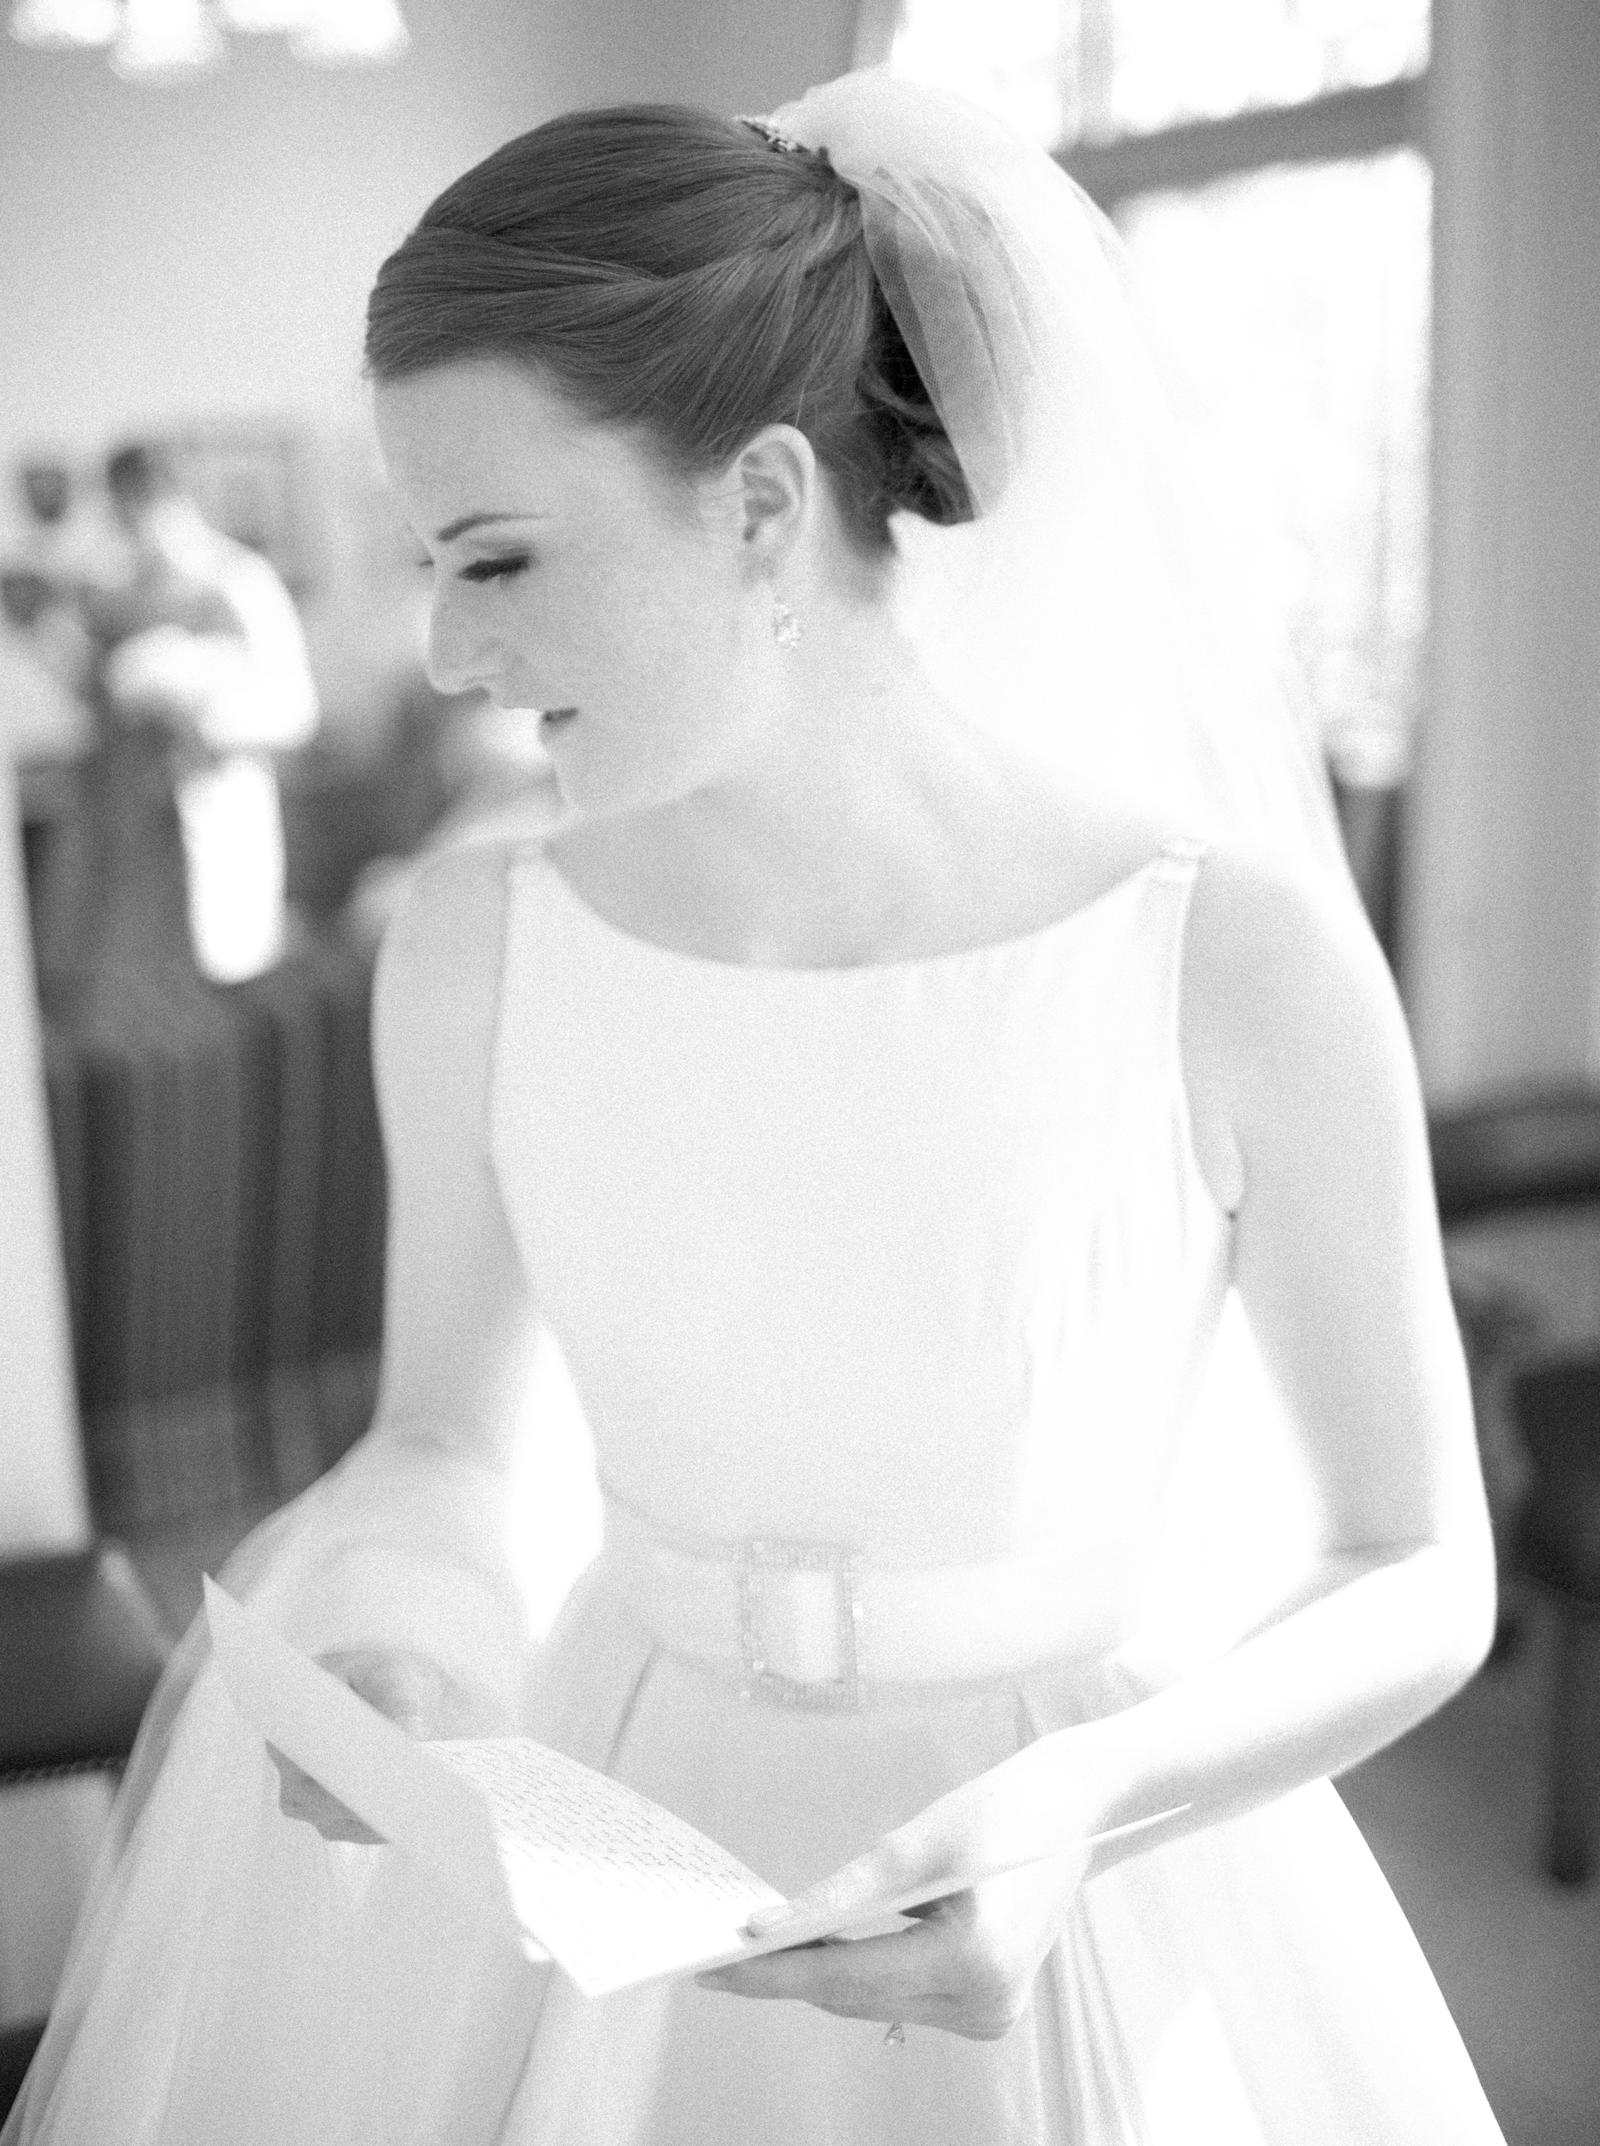 Wedding Photography | A bride reads a letter as she prepares for the wedding ceremony.